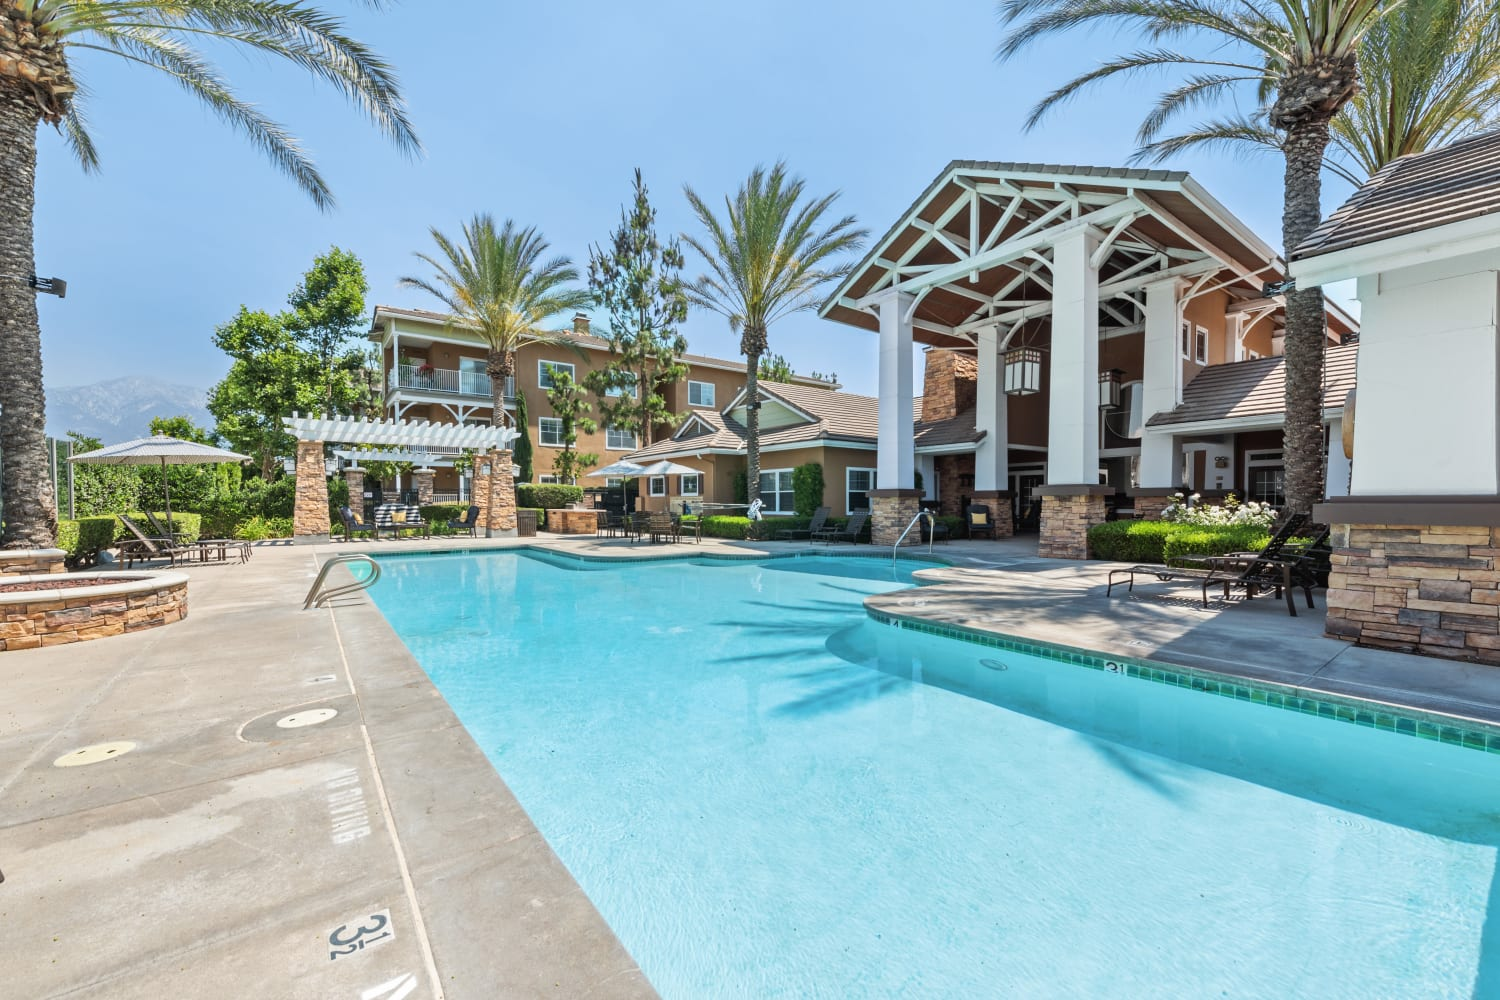 The Village on 5th offers a Luxury Swimming Pool in Rancho Cucamonga, California